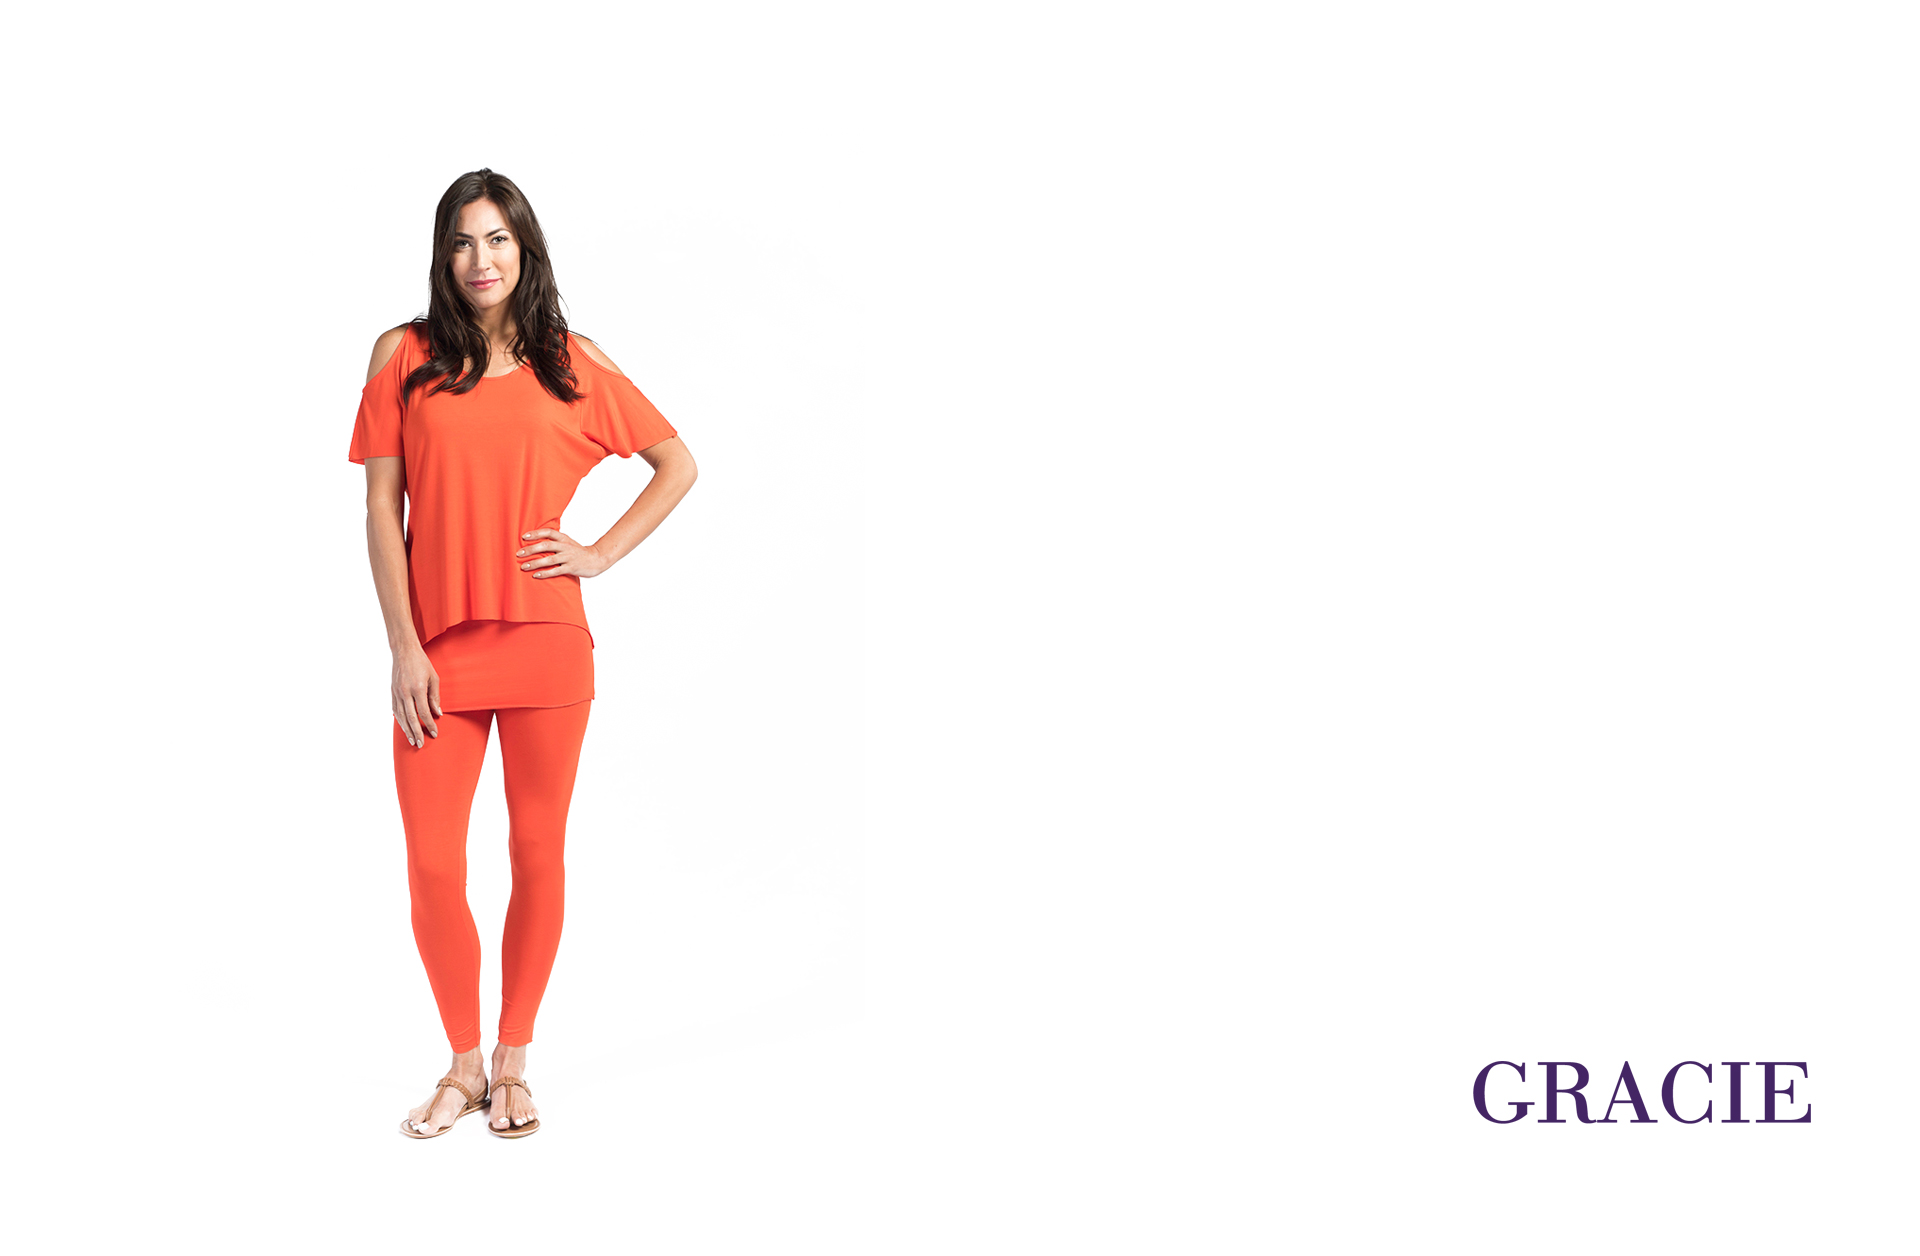 New Gracie Womenswear Summer Collection 2015